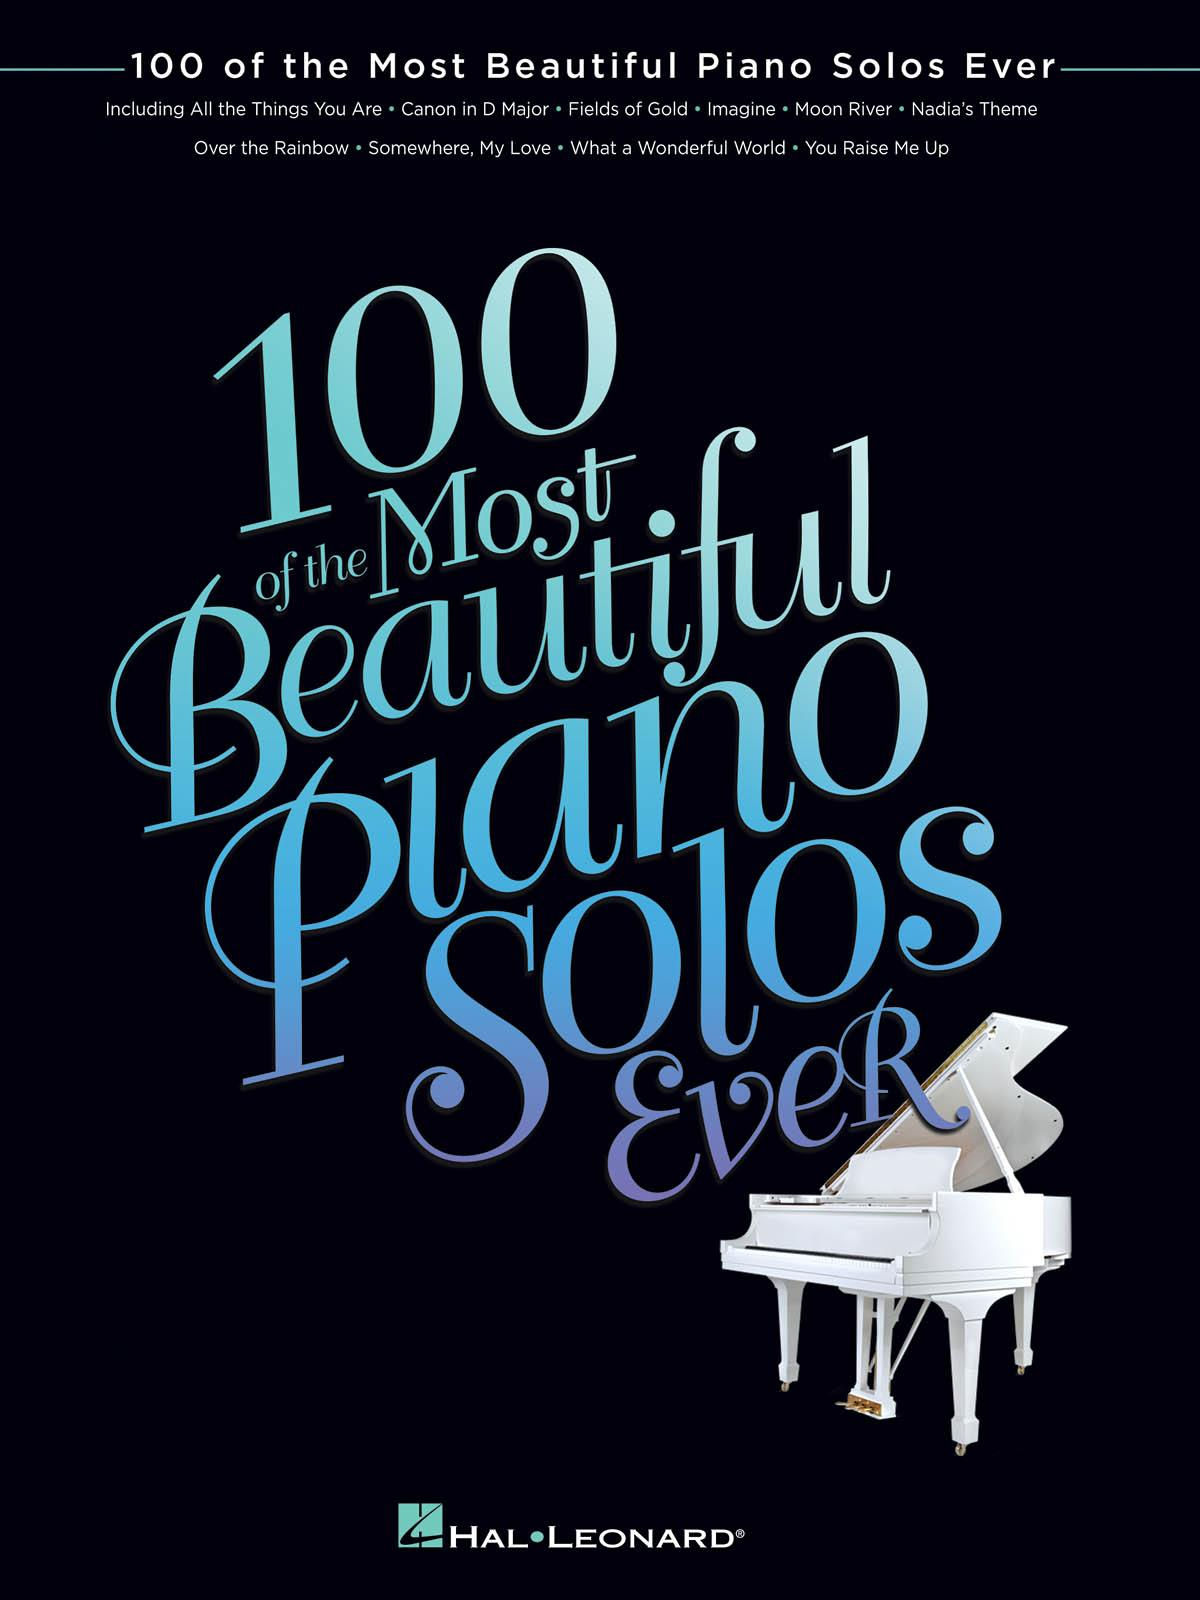 100 of the Most Beautiful Piano Solos Ever: Hal Leonard Corp